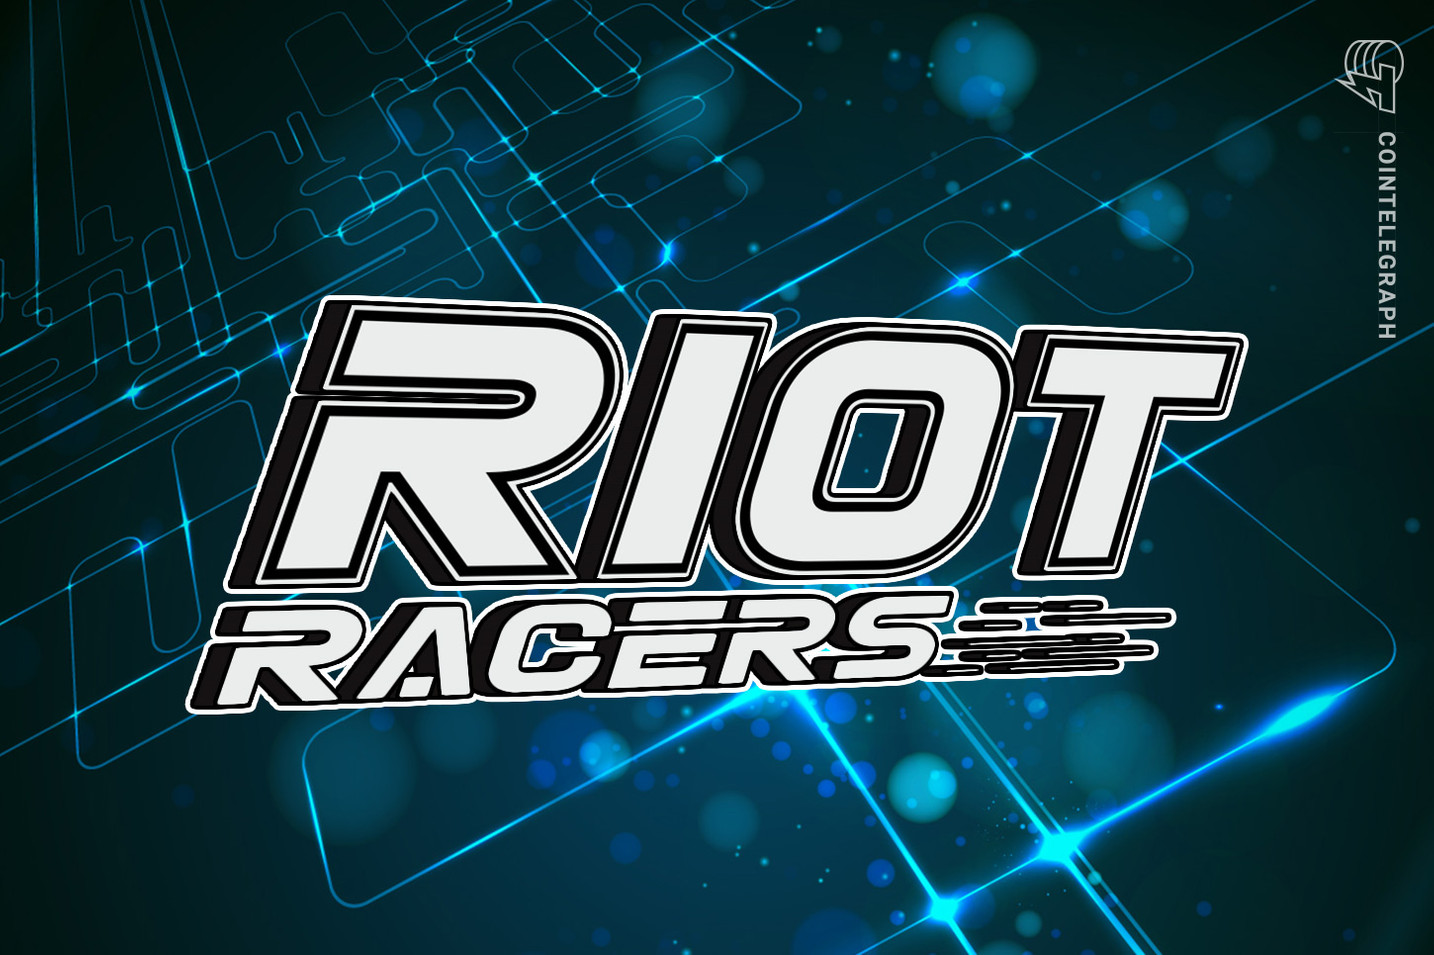 Riot Racers — Own a part of the latest play-to-earn car racing game